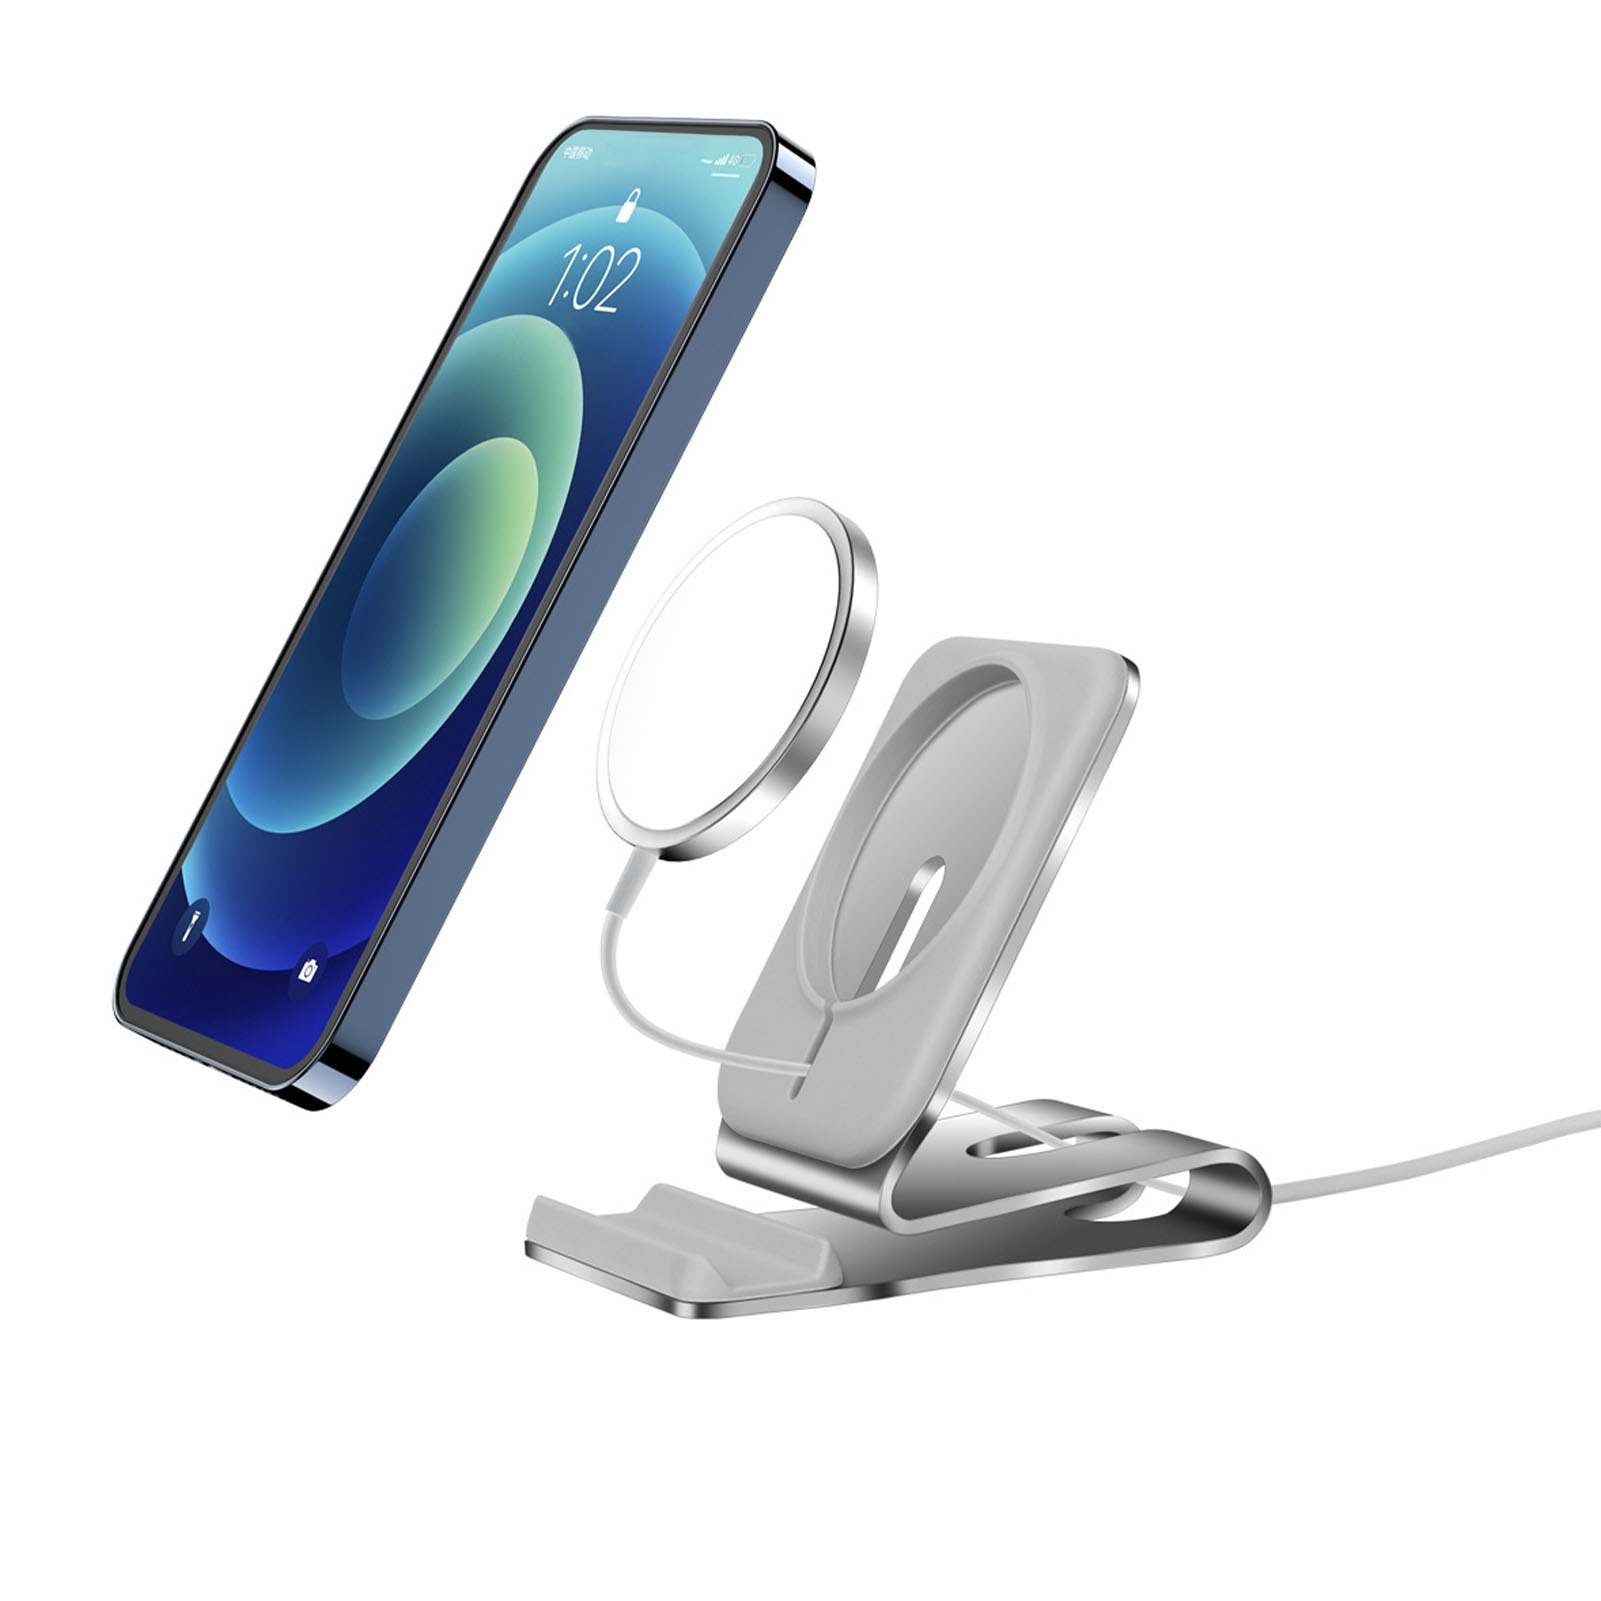 Rondaful Non-slip Wireless Magnetic Phone Charger Stand Holder For IPhone 12 Magsafe Desk Power Base Dock Cradle Bracket